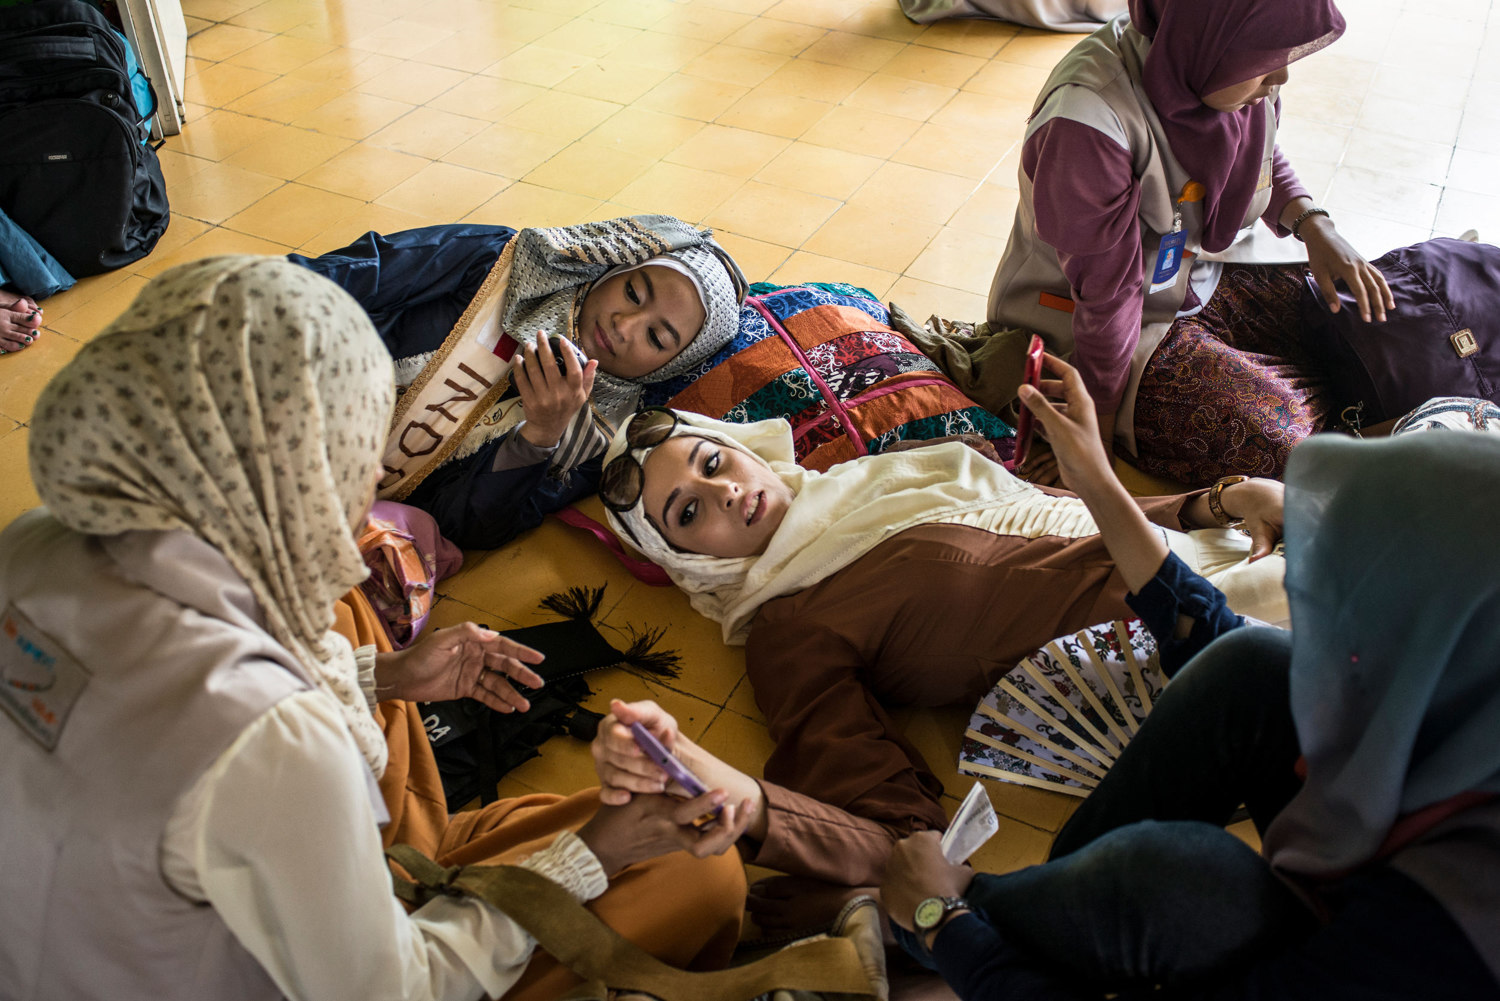 Fatma Ben Guefrache, the finalist from Tunisia and one of the Indonesian finalists rest after praying at a mosque.